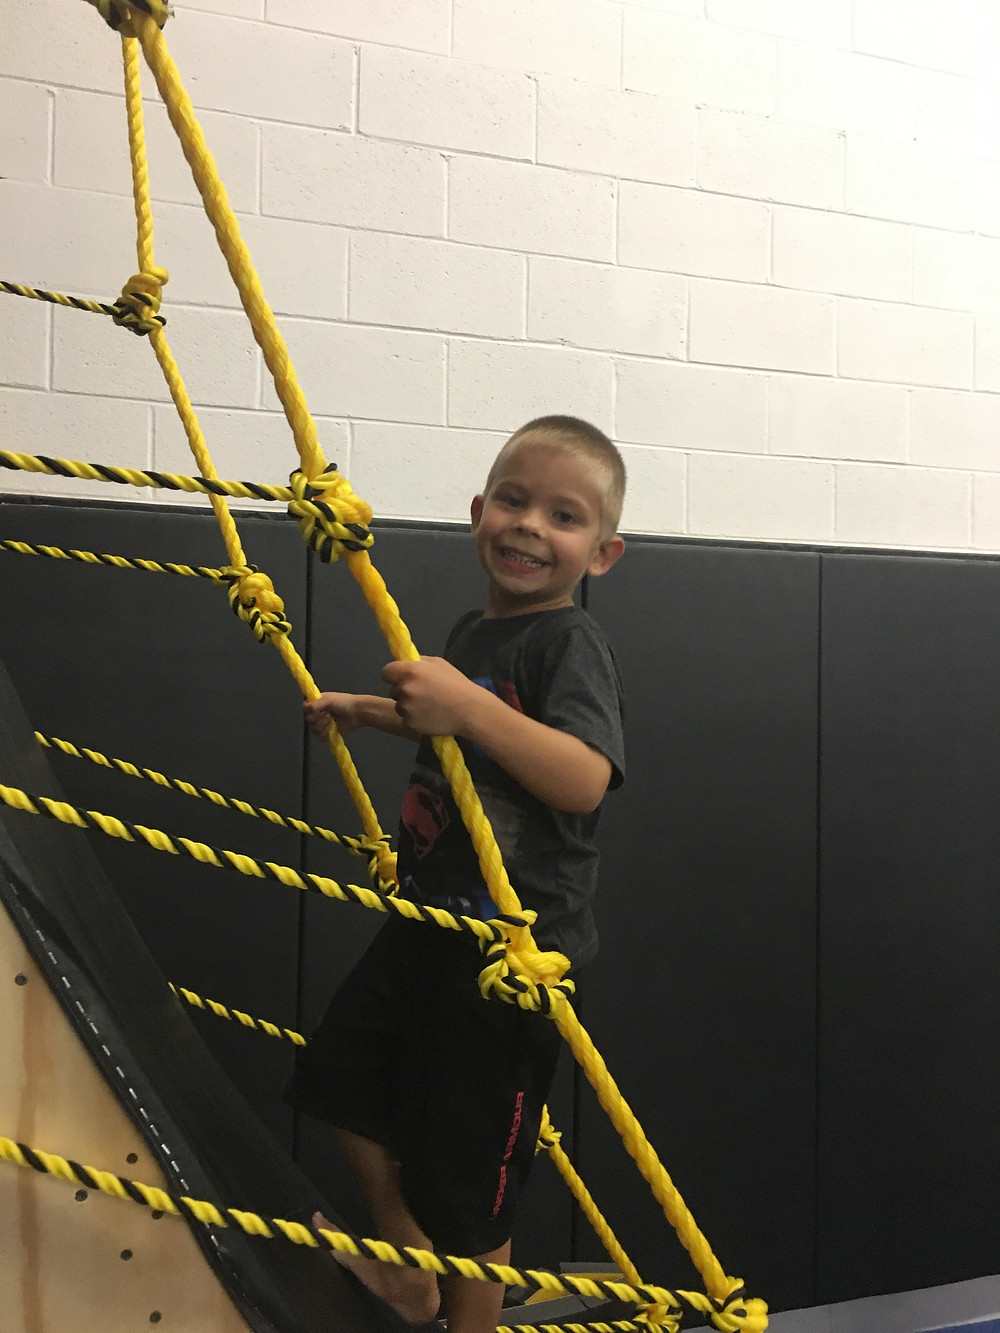 Bee Strong Boy class member, Nicholas, uses ropes to help ascend the warped wall.